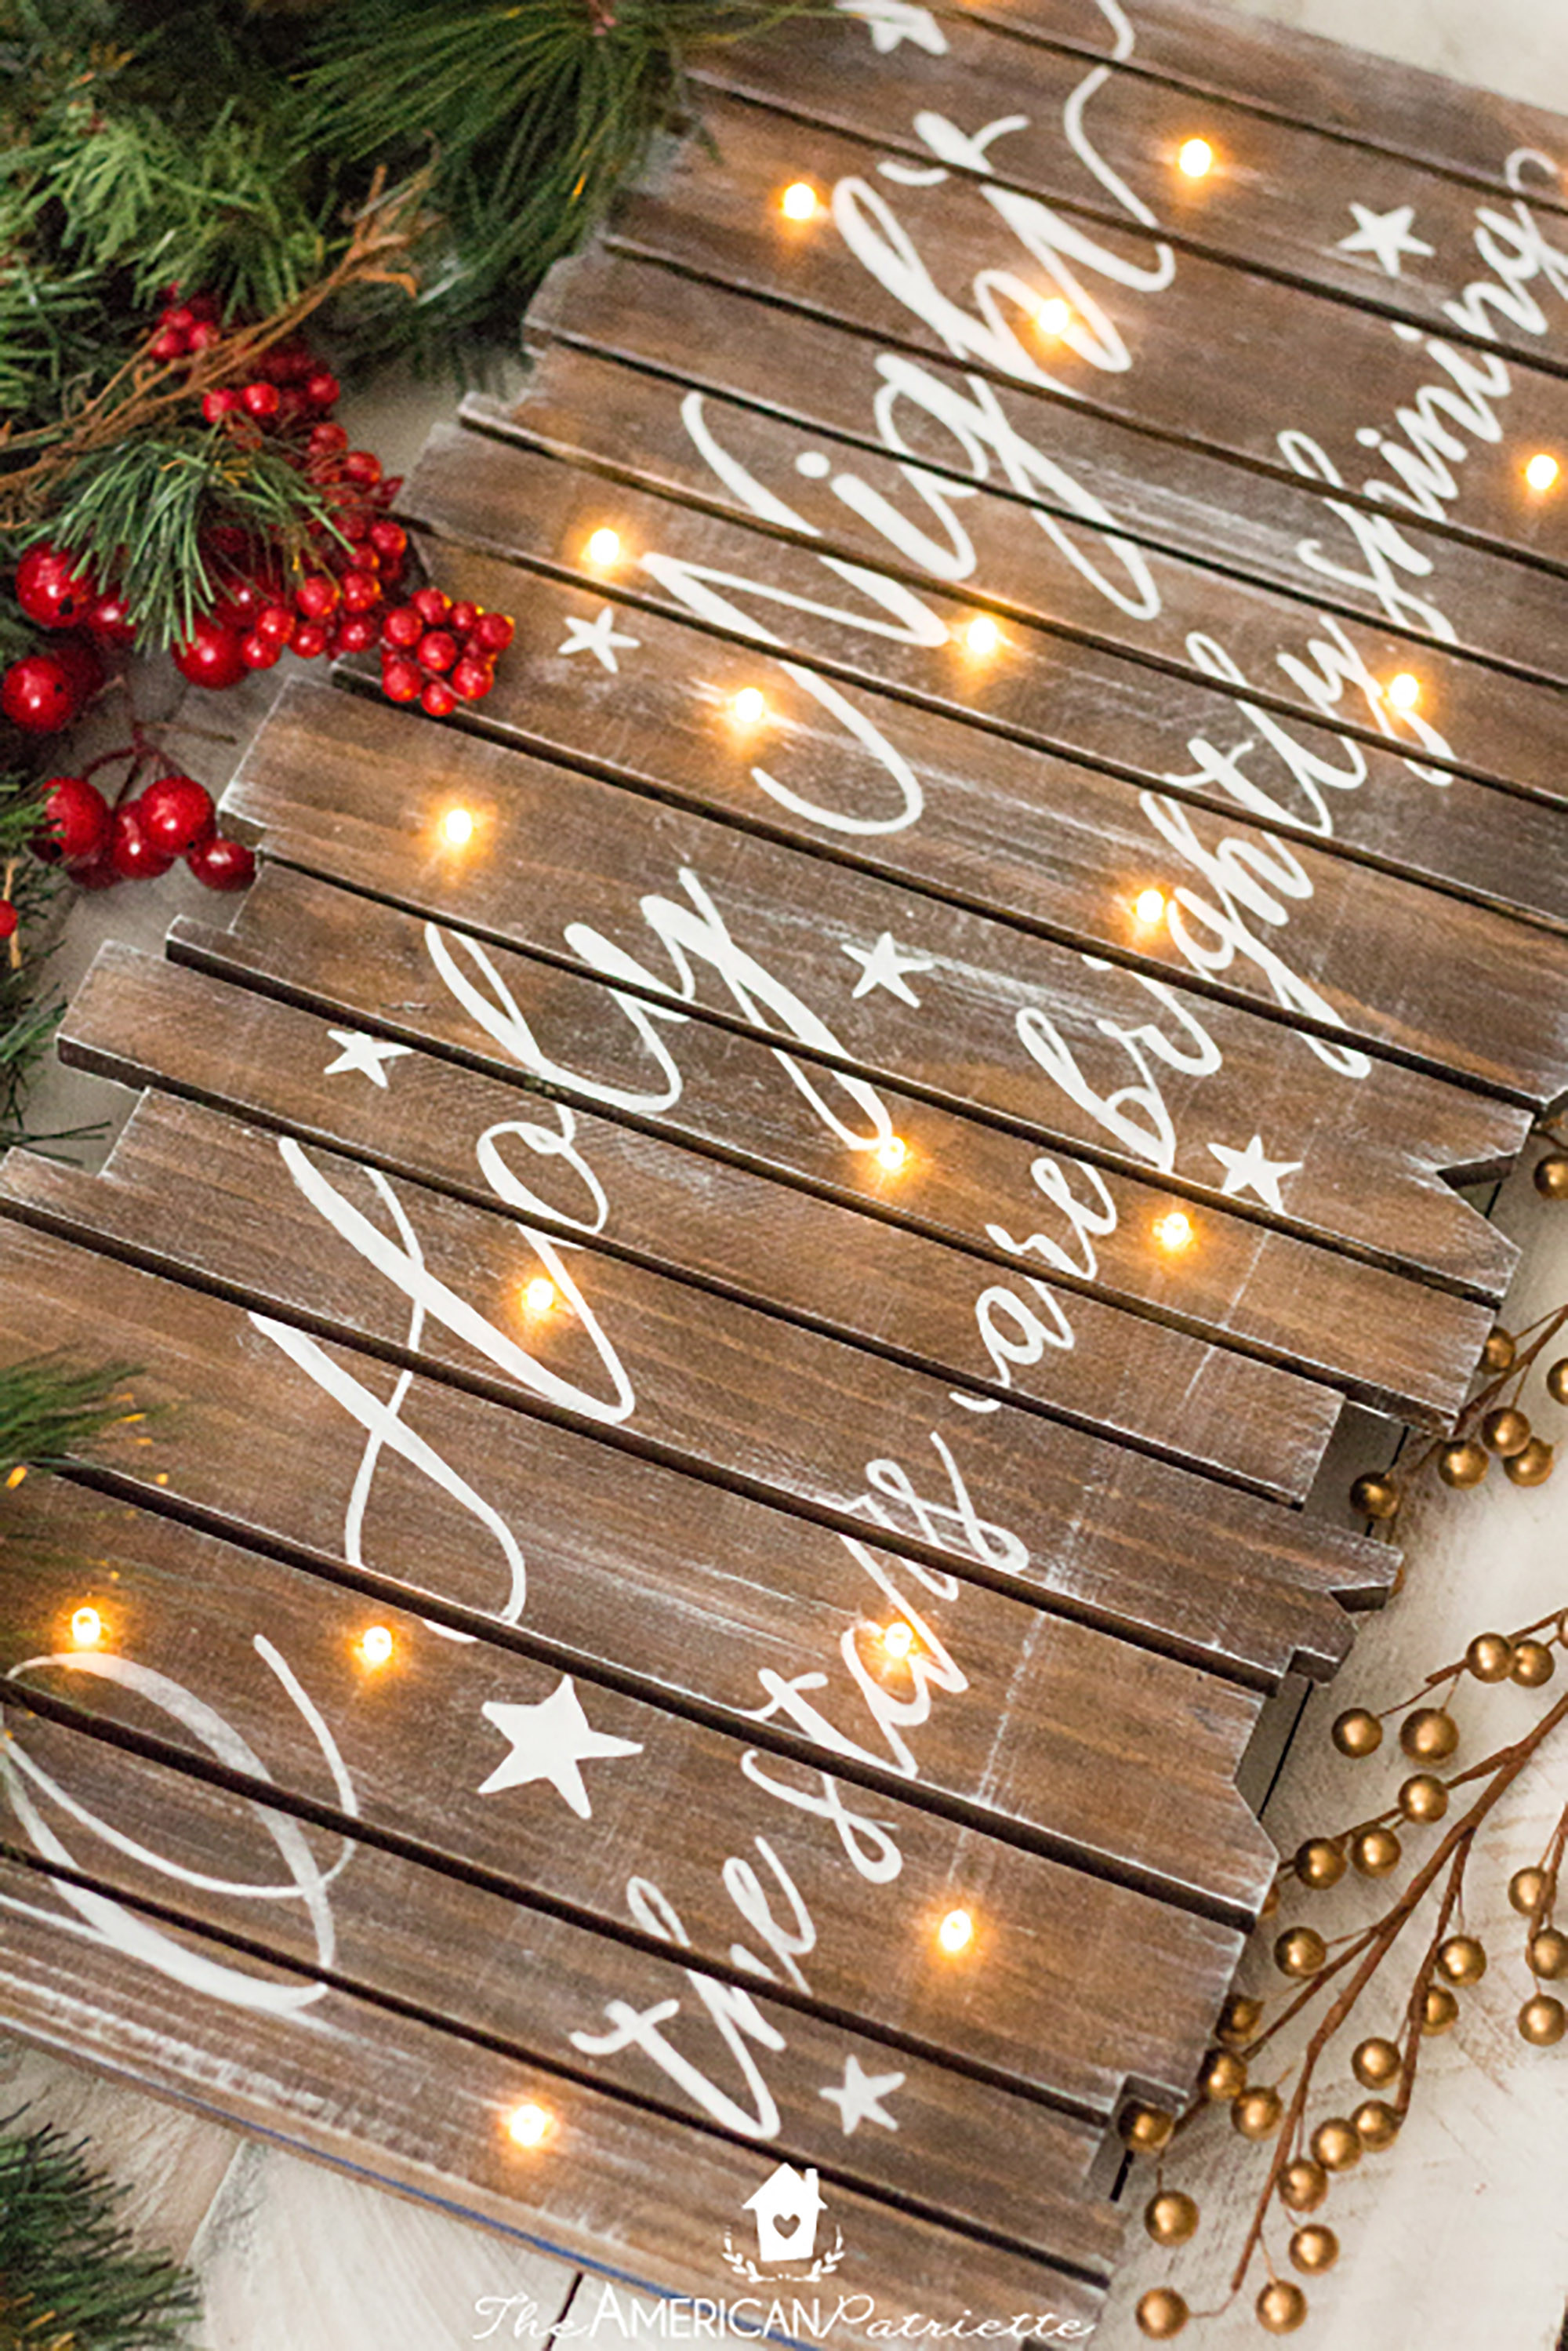 Best ideas about DIY Christmas Lights . Save or Pin 30 Easy Christmas Crafts for Adults to Make DIY Ideas Now.